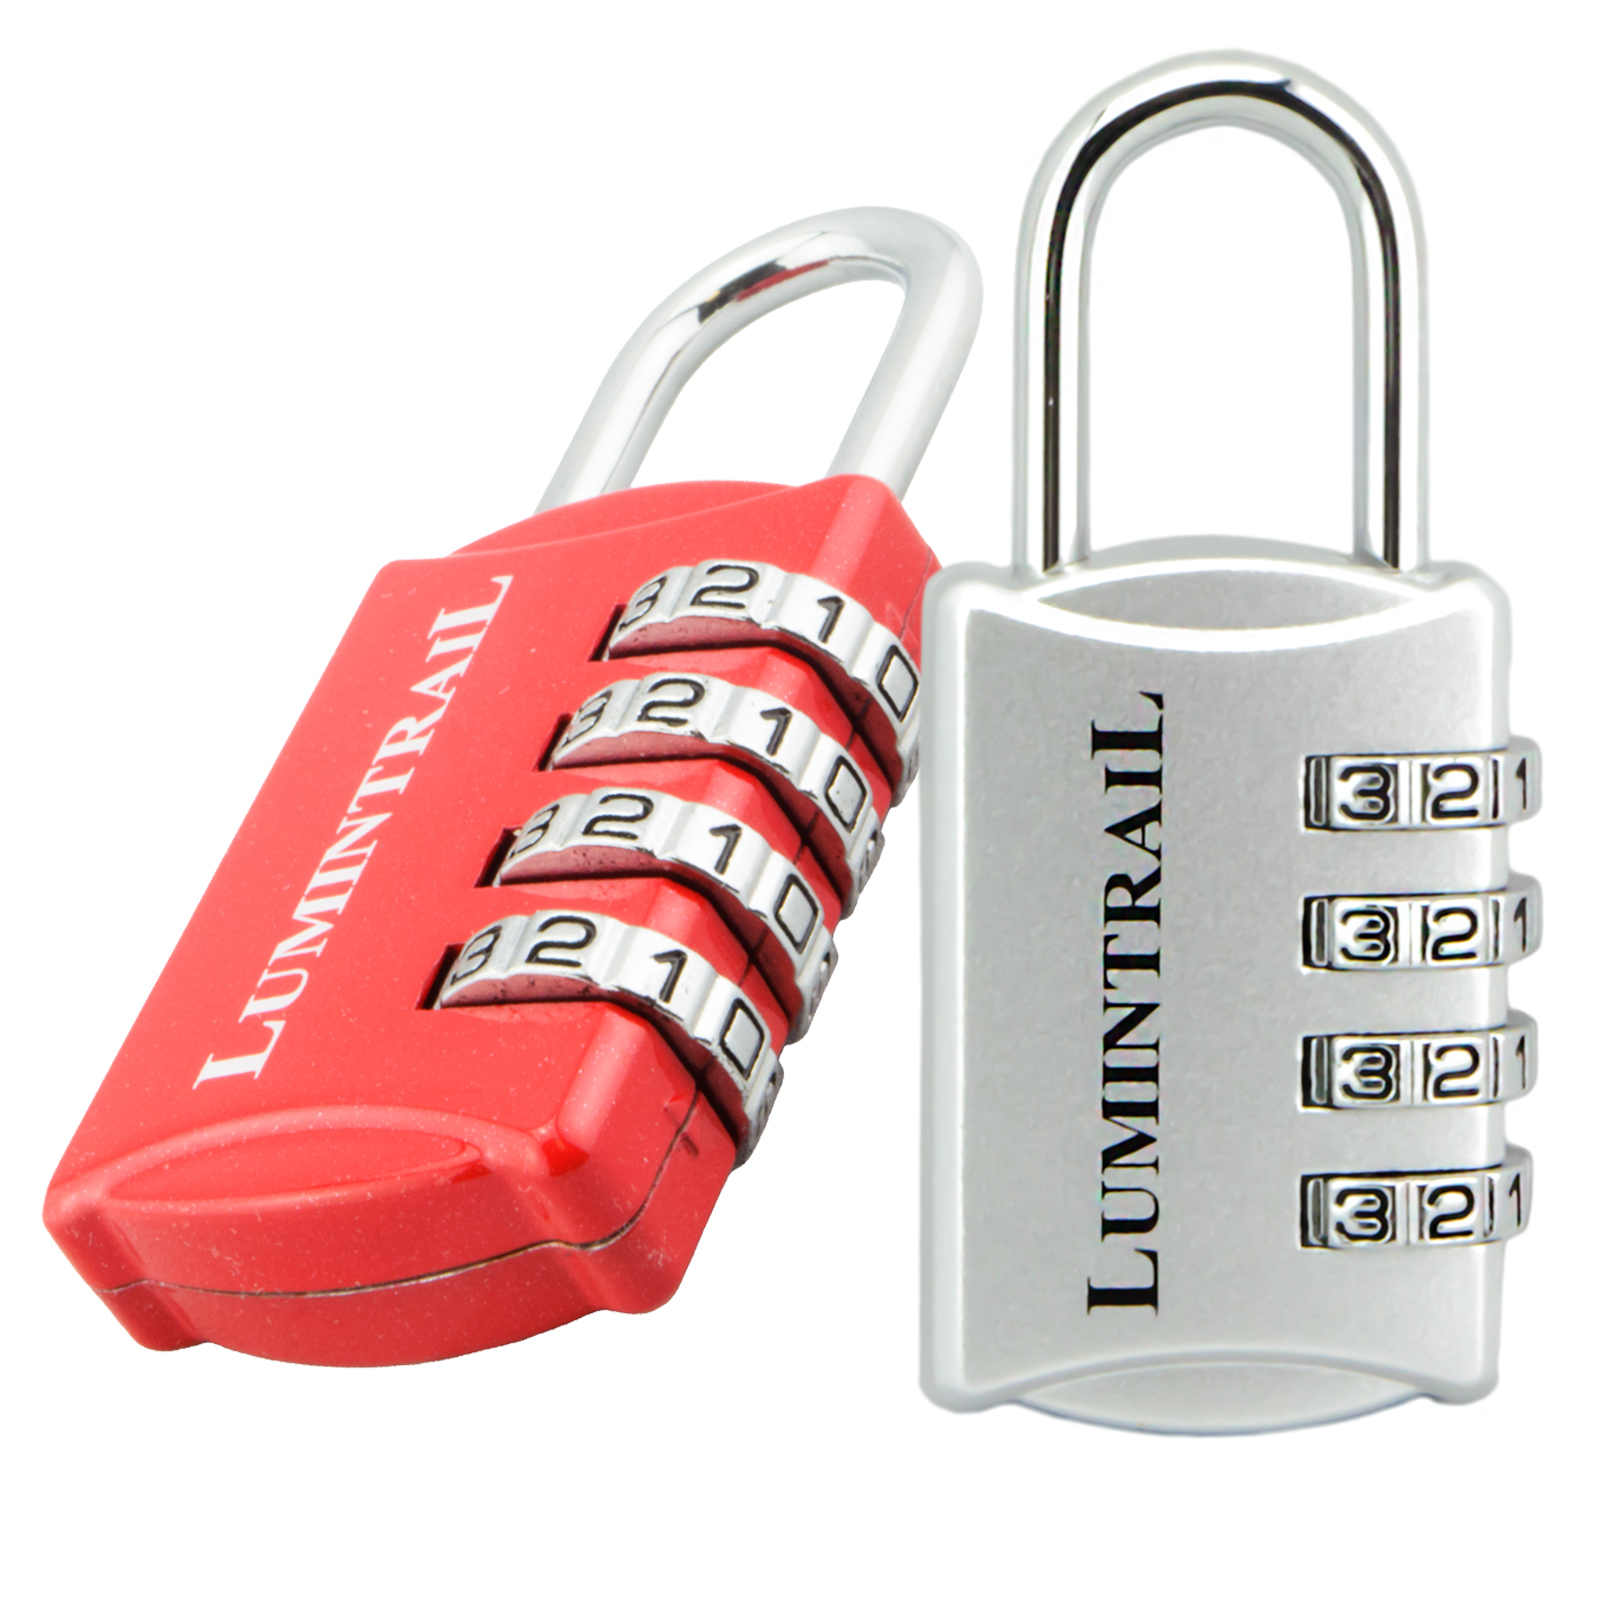 Lumintrail 2 Pack Set-Your-Own 4 Digit Combination Padlock with 1/2 Inch Shackle Lock All Metal - Assorted Colors